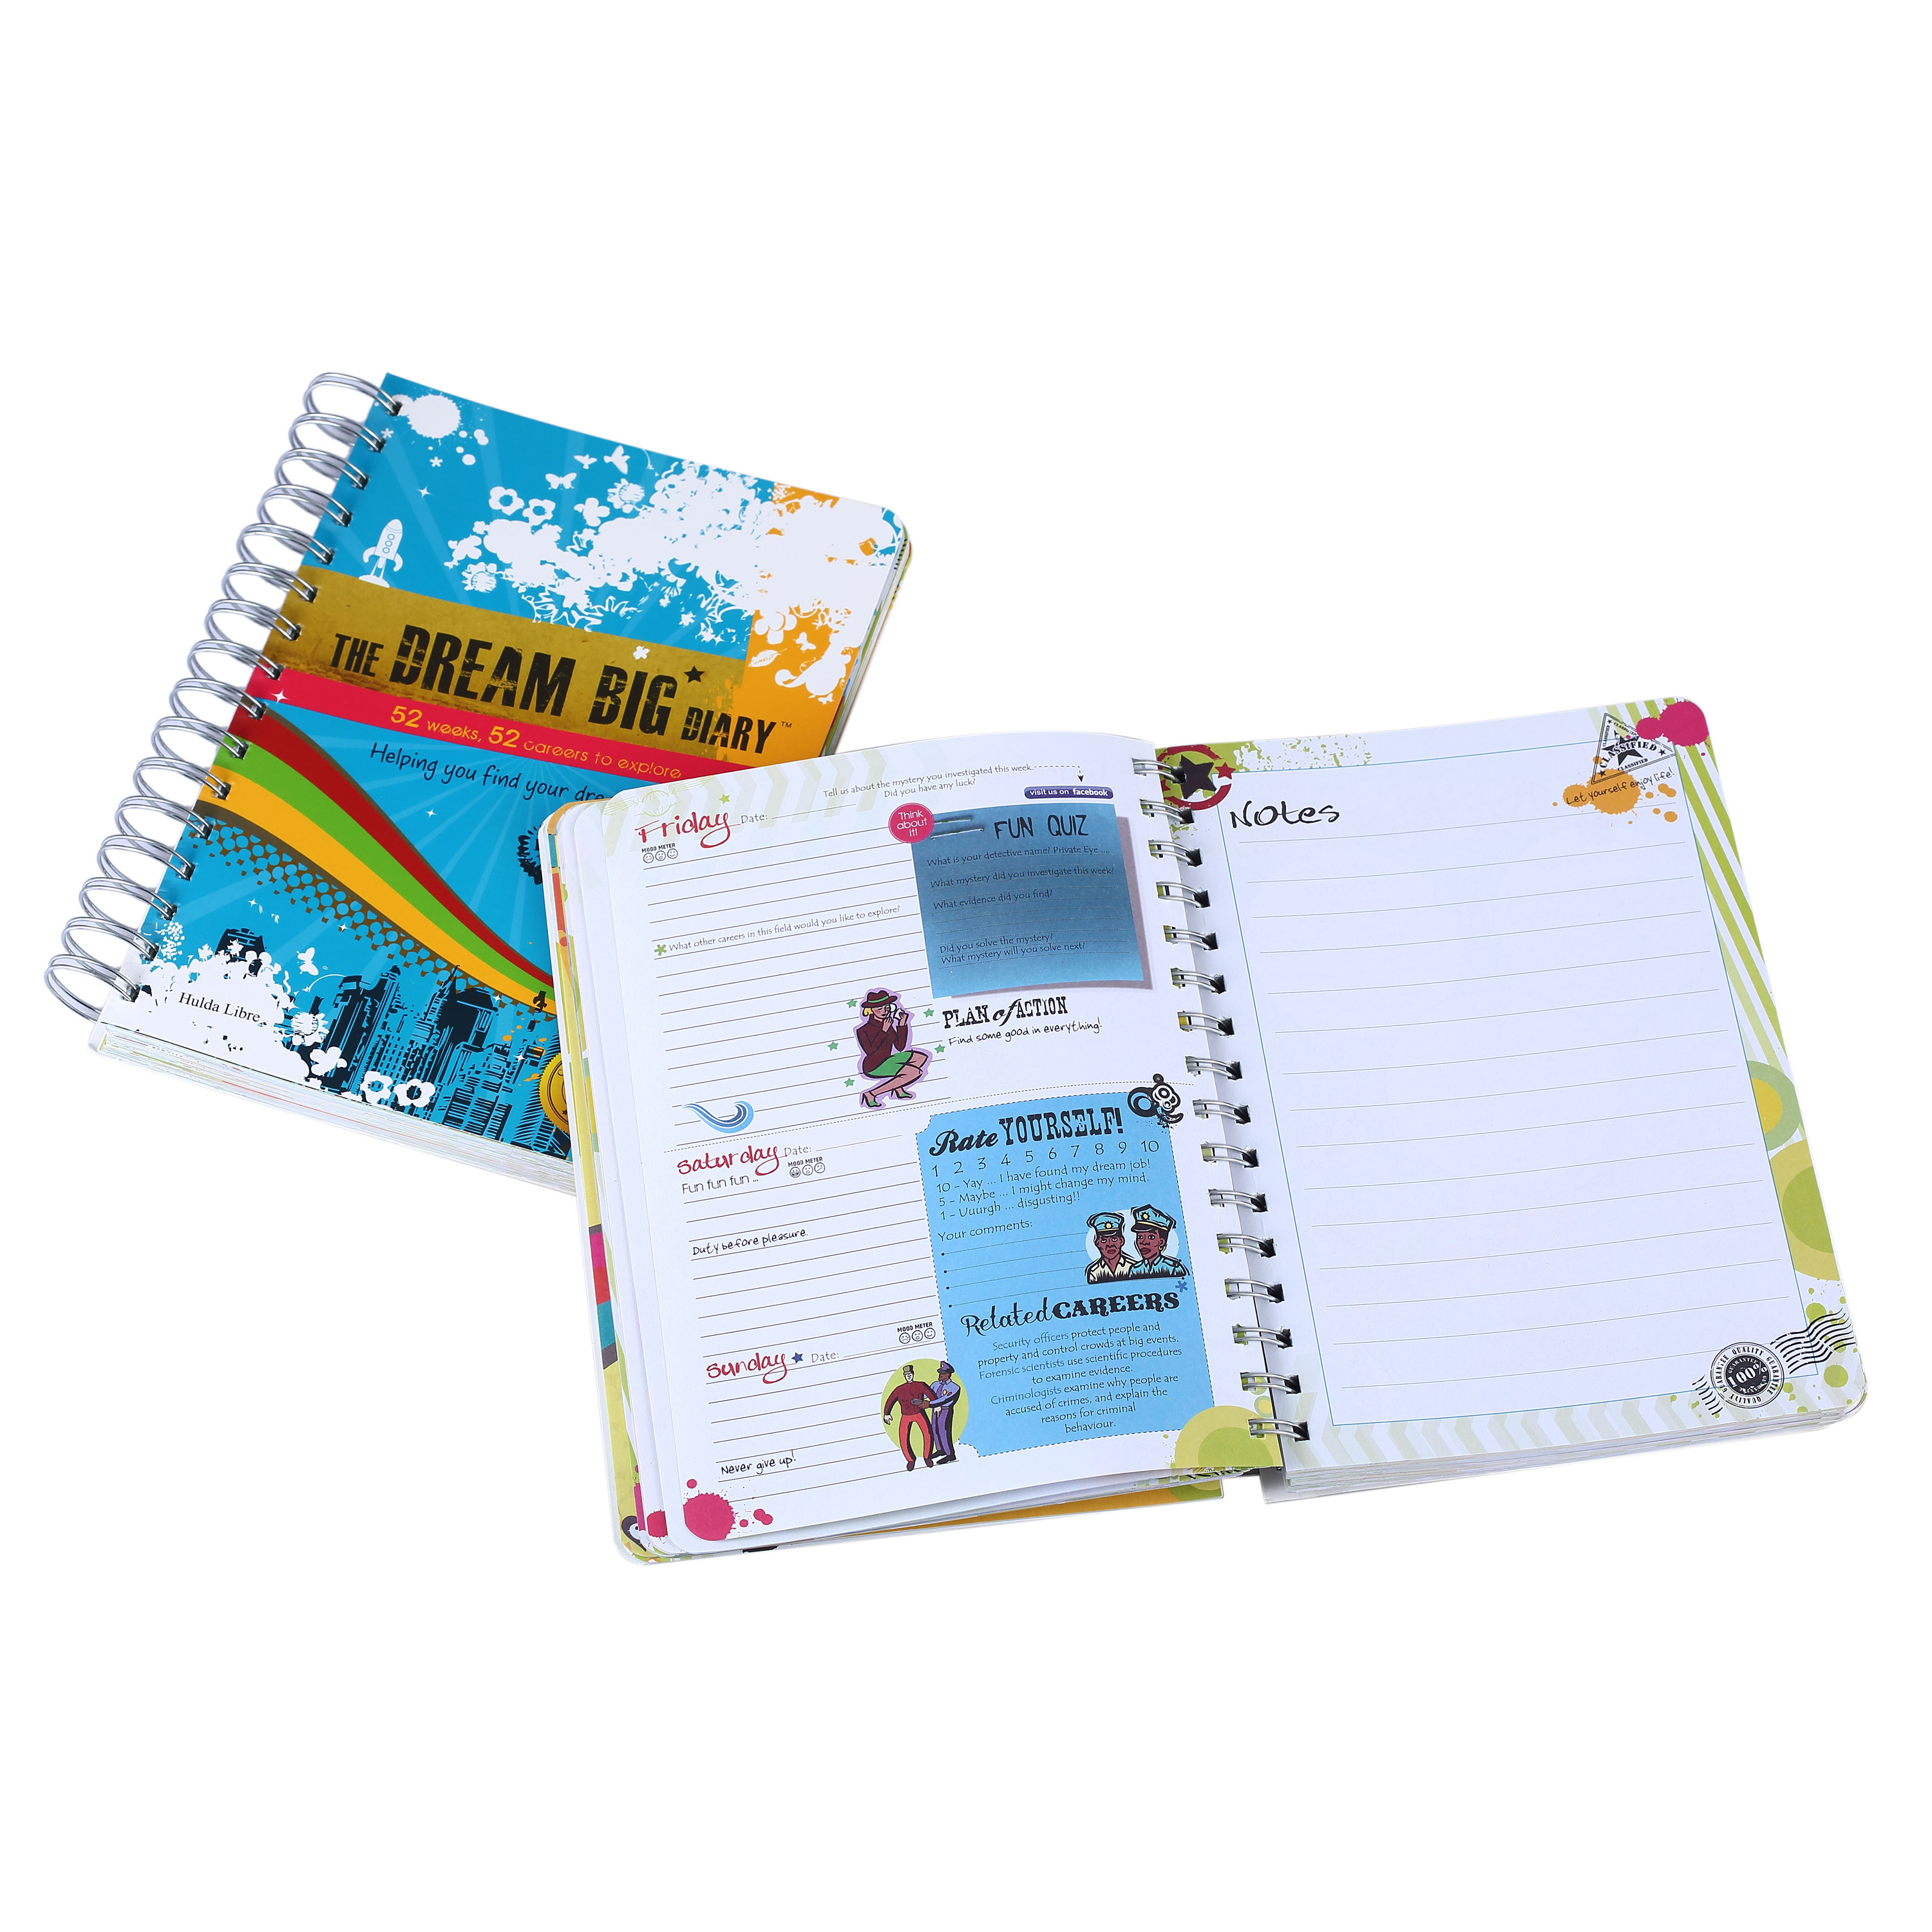 A006-a Promotional Products 2015/2016/2017/2018/2019 Best Agenda,Custom  Daily Planner Notebook Printing 2019 - Buy Notebook And Planner And Journal  Printing Service,Promotional Products 2015/2016/2017/2018/2019 Best Agenda  Custom Daily Planner Notebook ...